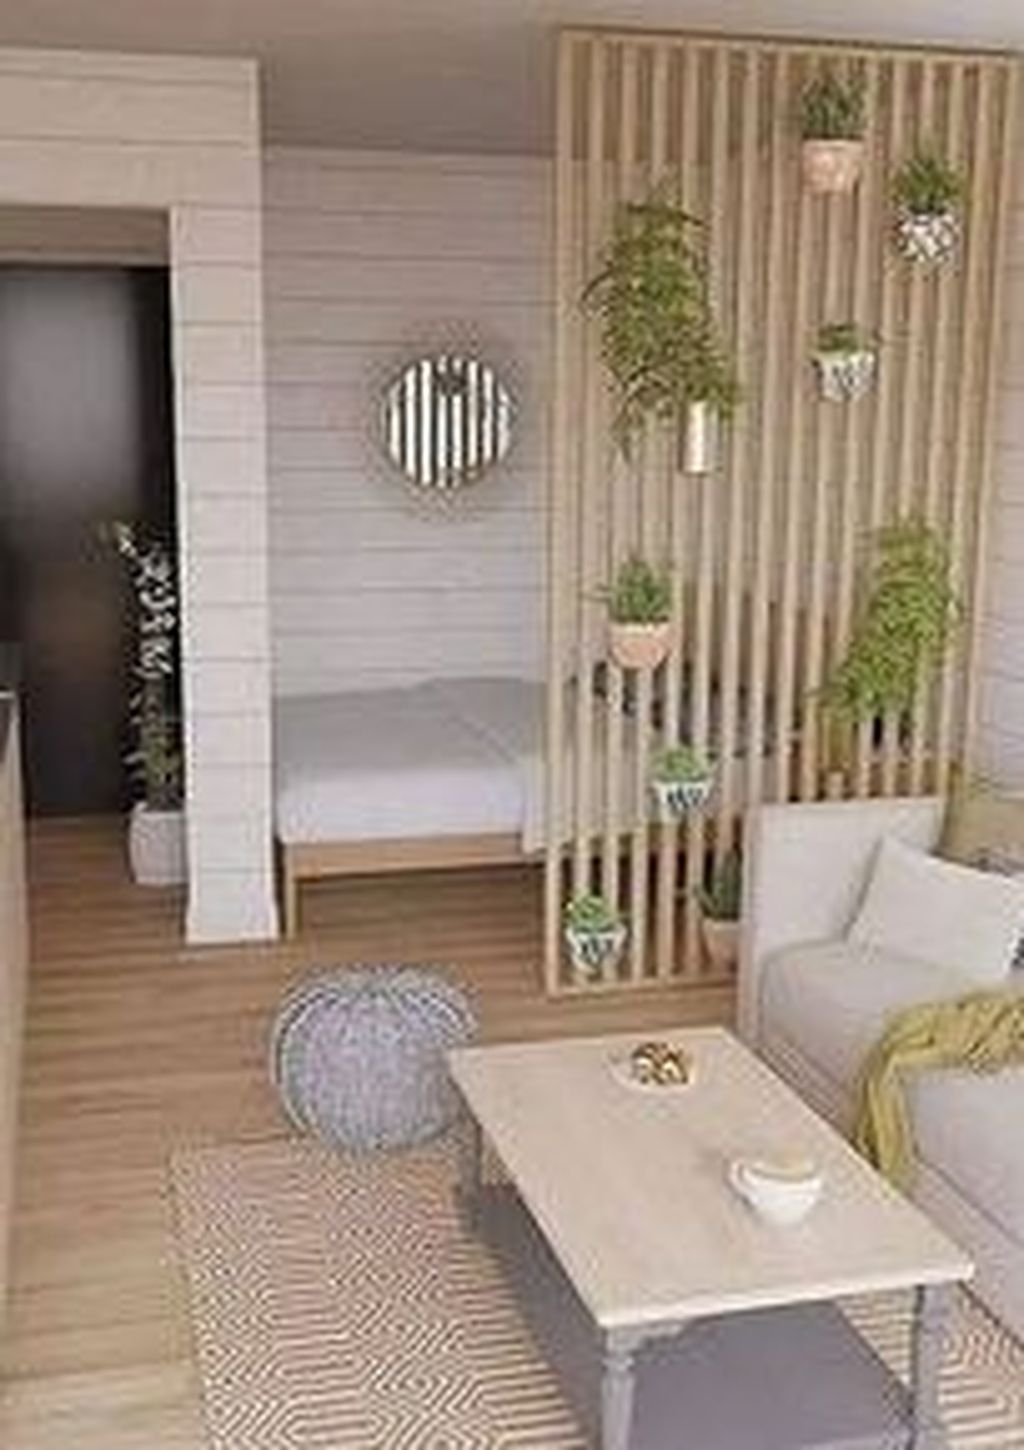 Unusual Tiny Room Dividers Design Ideas That Will Amaze You 14